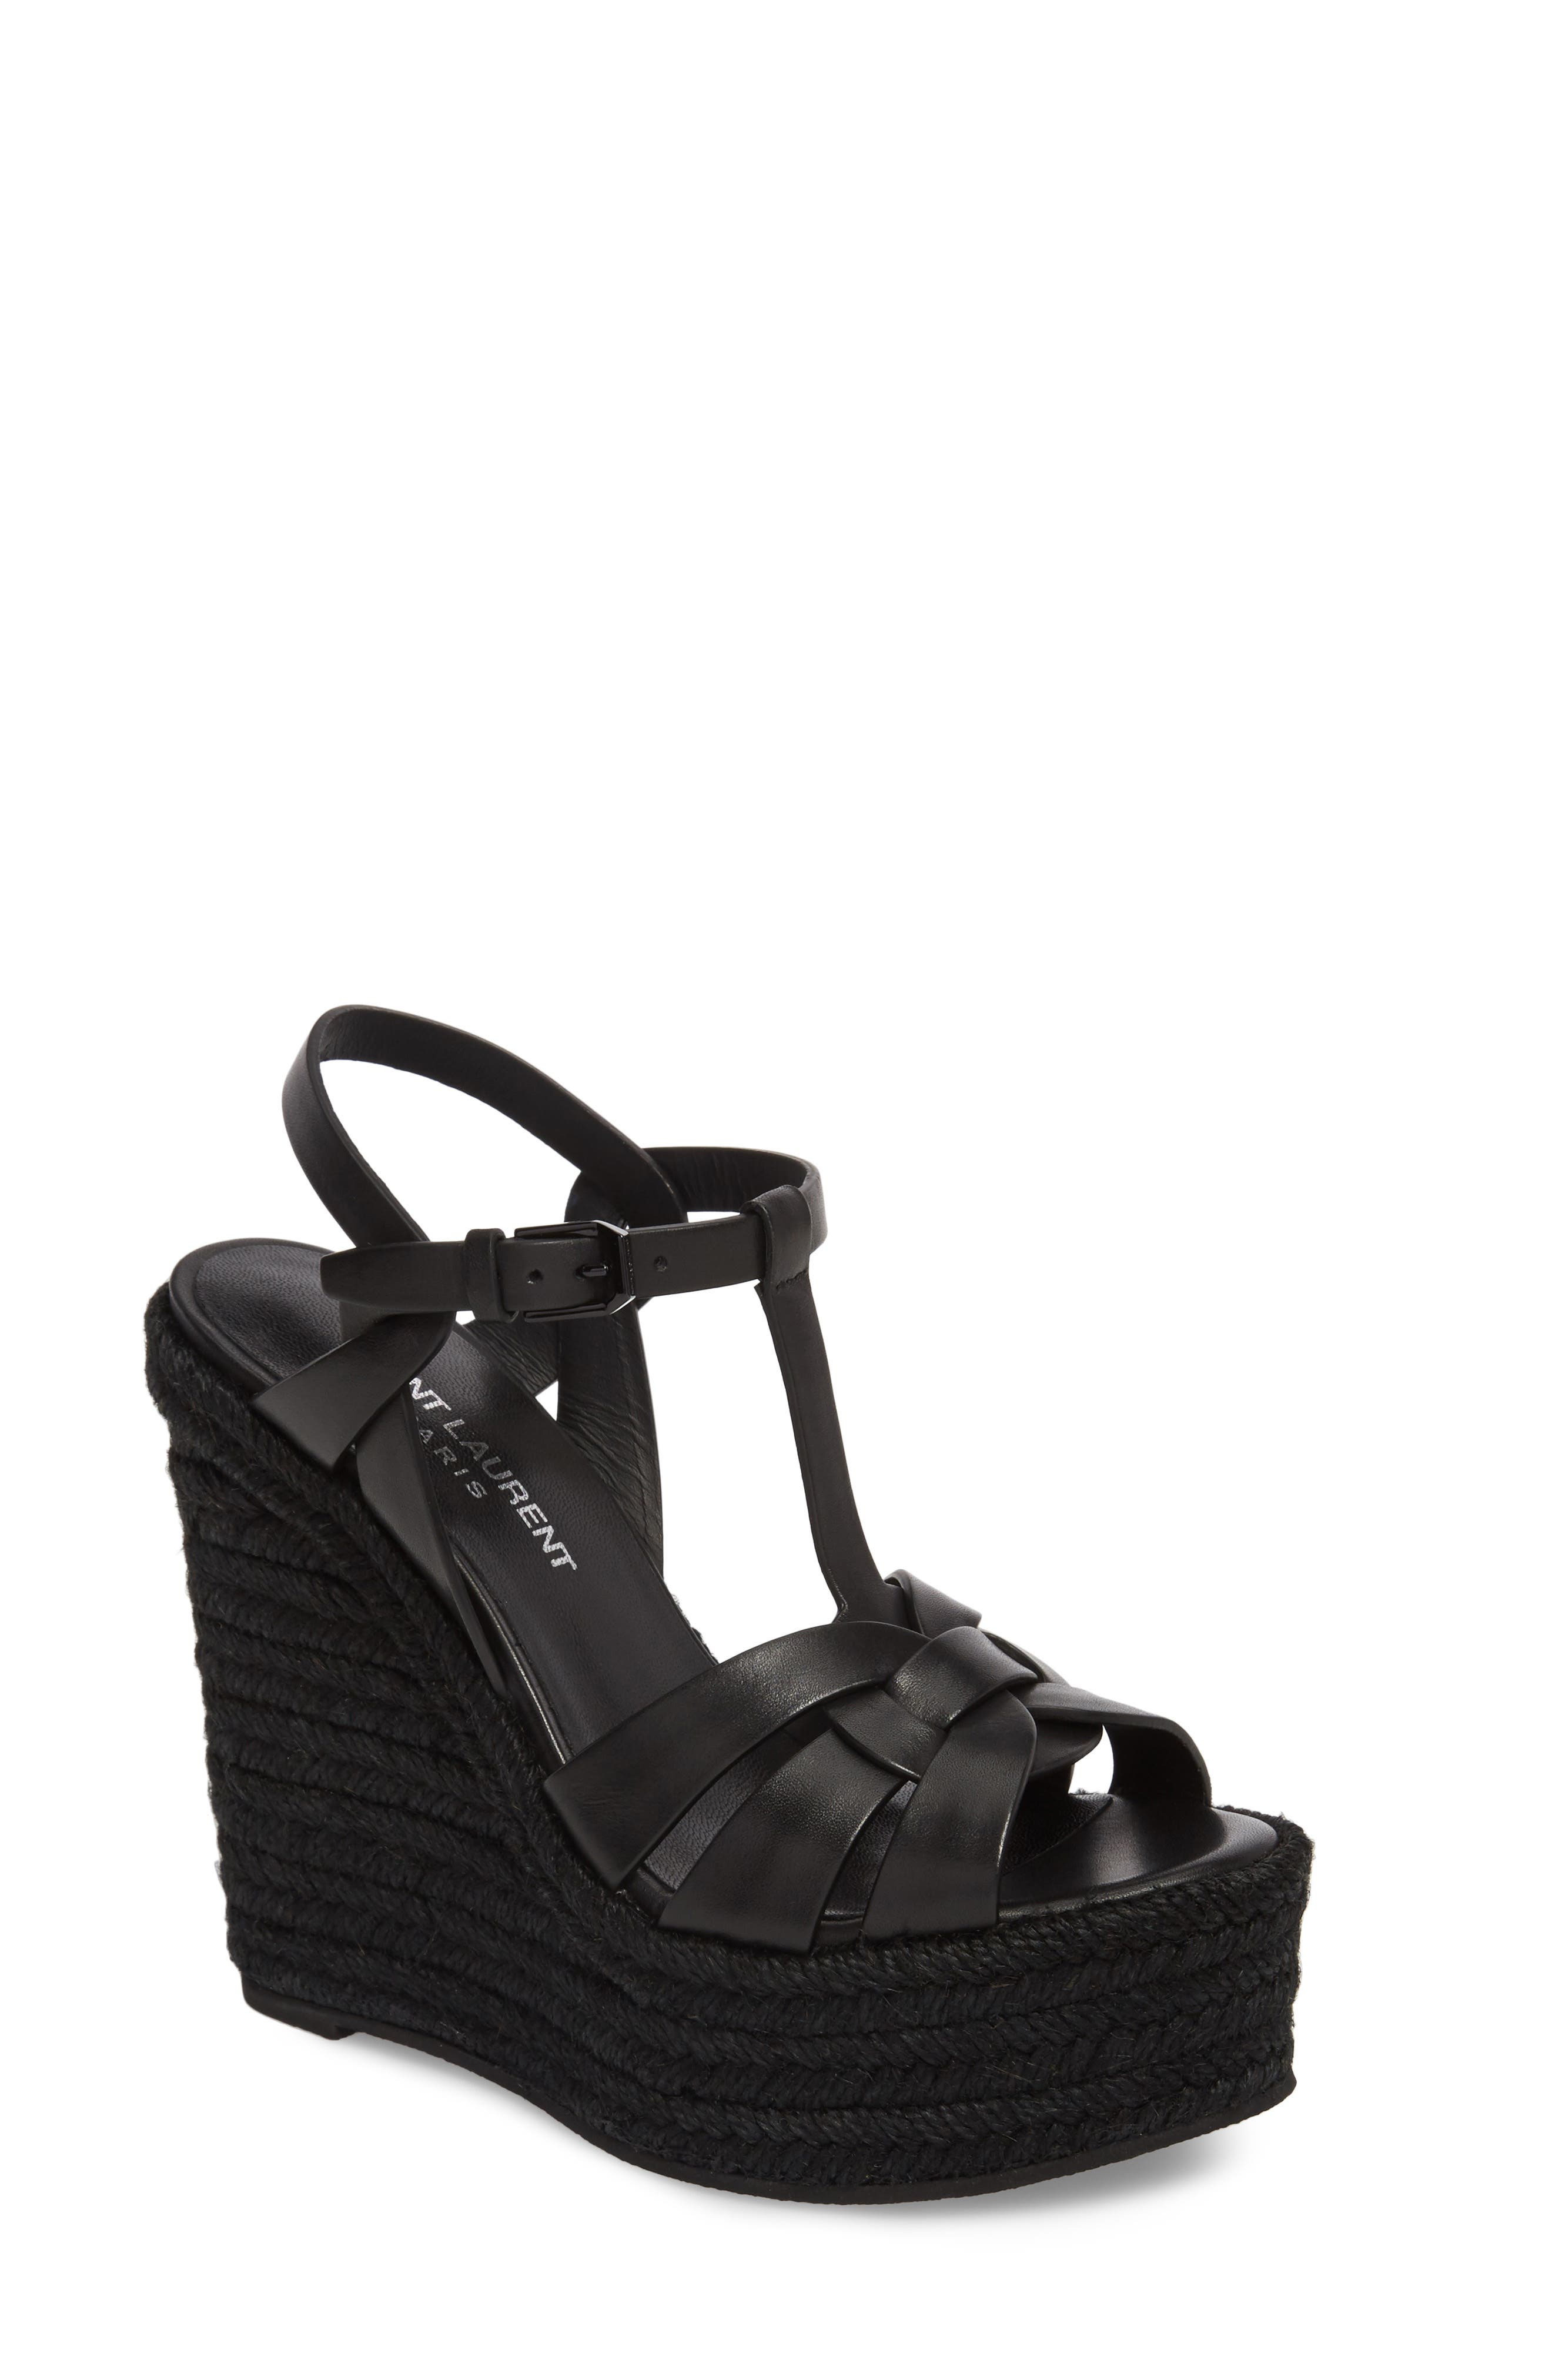 SAINT LAURENT, Tribute Espadrille Wedge, Main thumbnail 1, color, BLACK